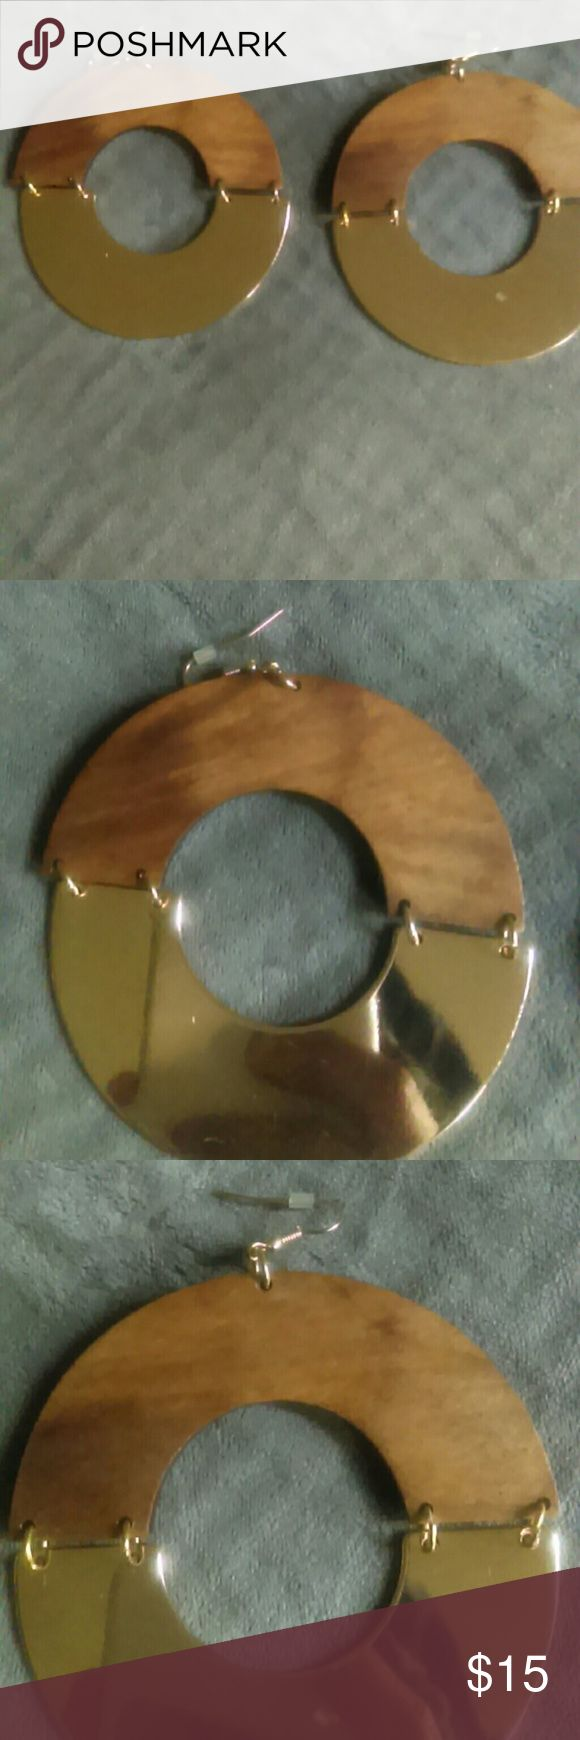 Wooden hoop earrings Gold and wooden hoop earrings brand new never been worn if you have any questions please ask. Aldo Jewelry Earrings